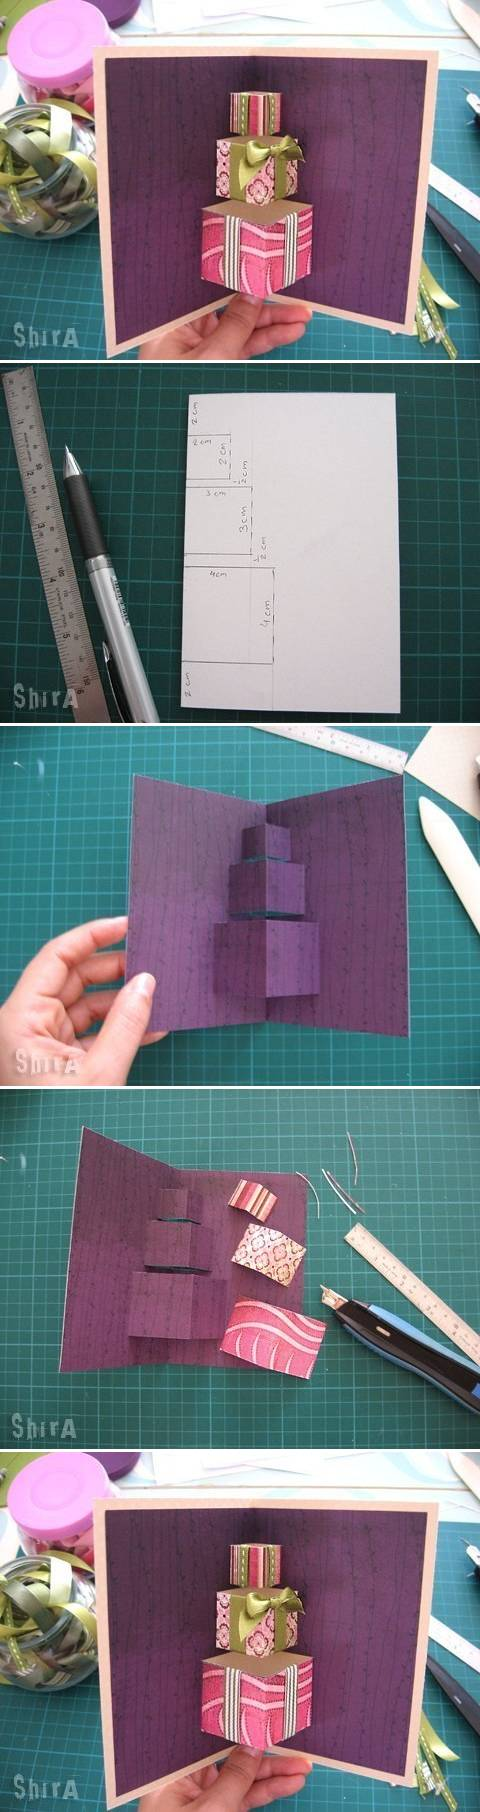 How to make Simple 3D Gift Card step by step DIY tutorial instructions